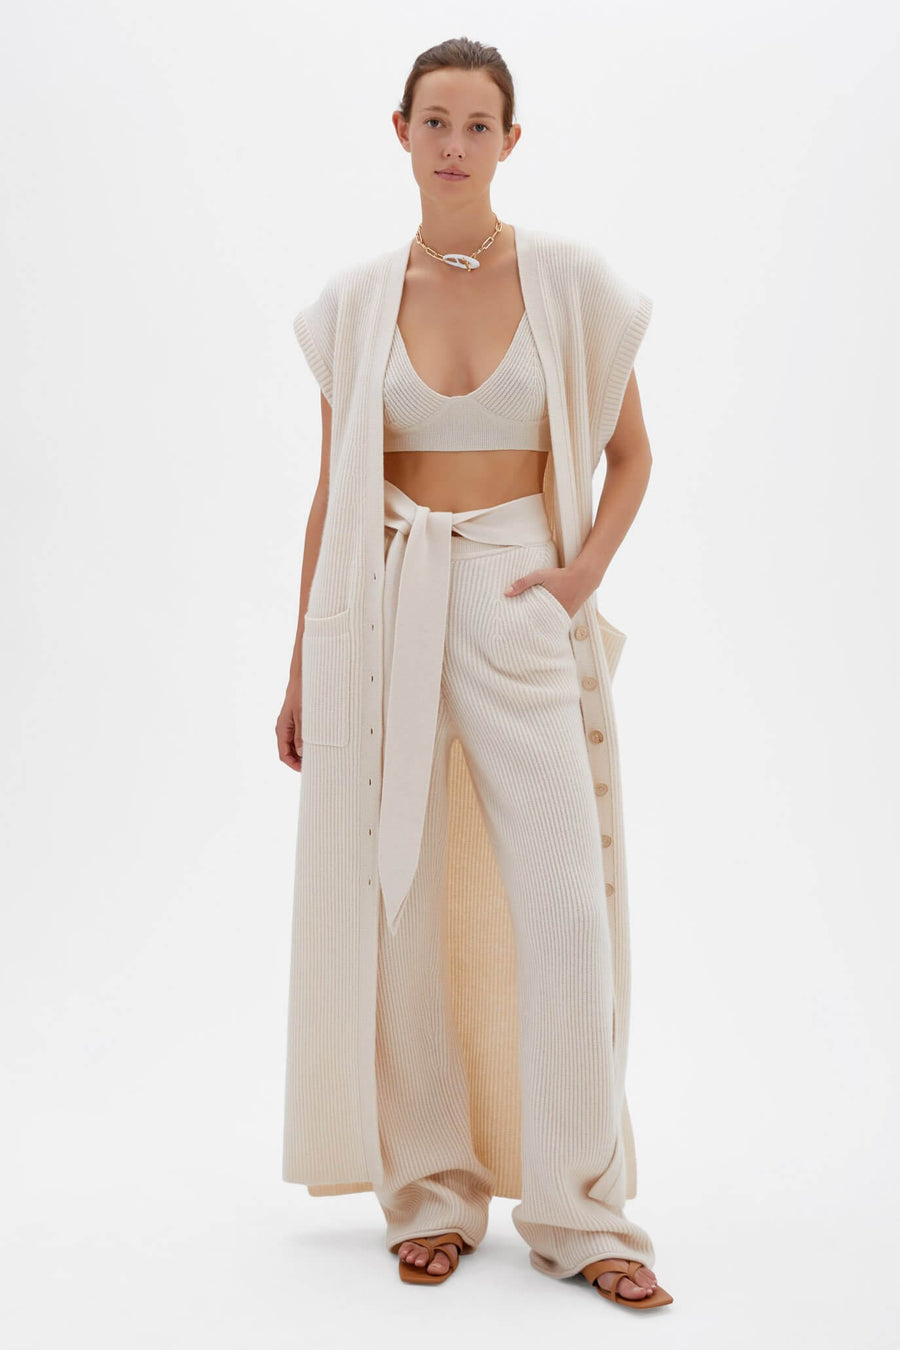 Jonathan Simkhai Tala Loungewear Pant in Ecru from The New Trend